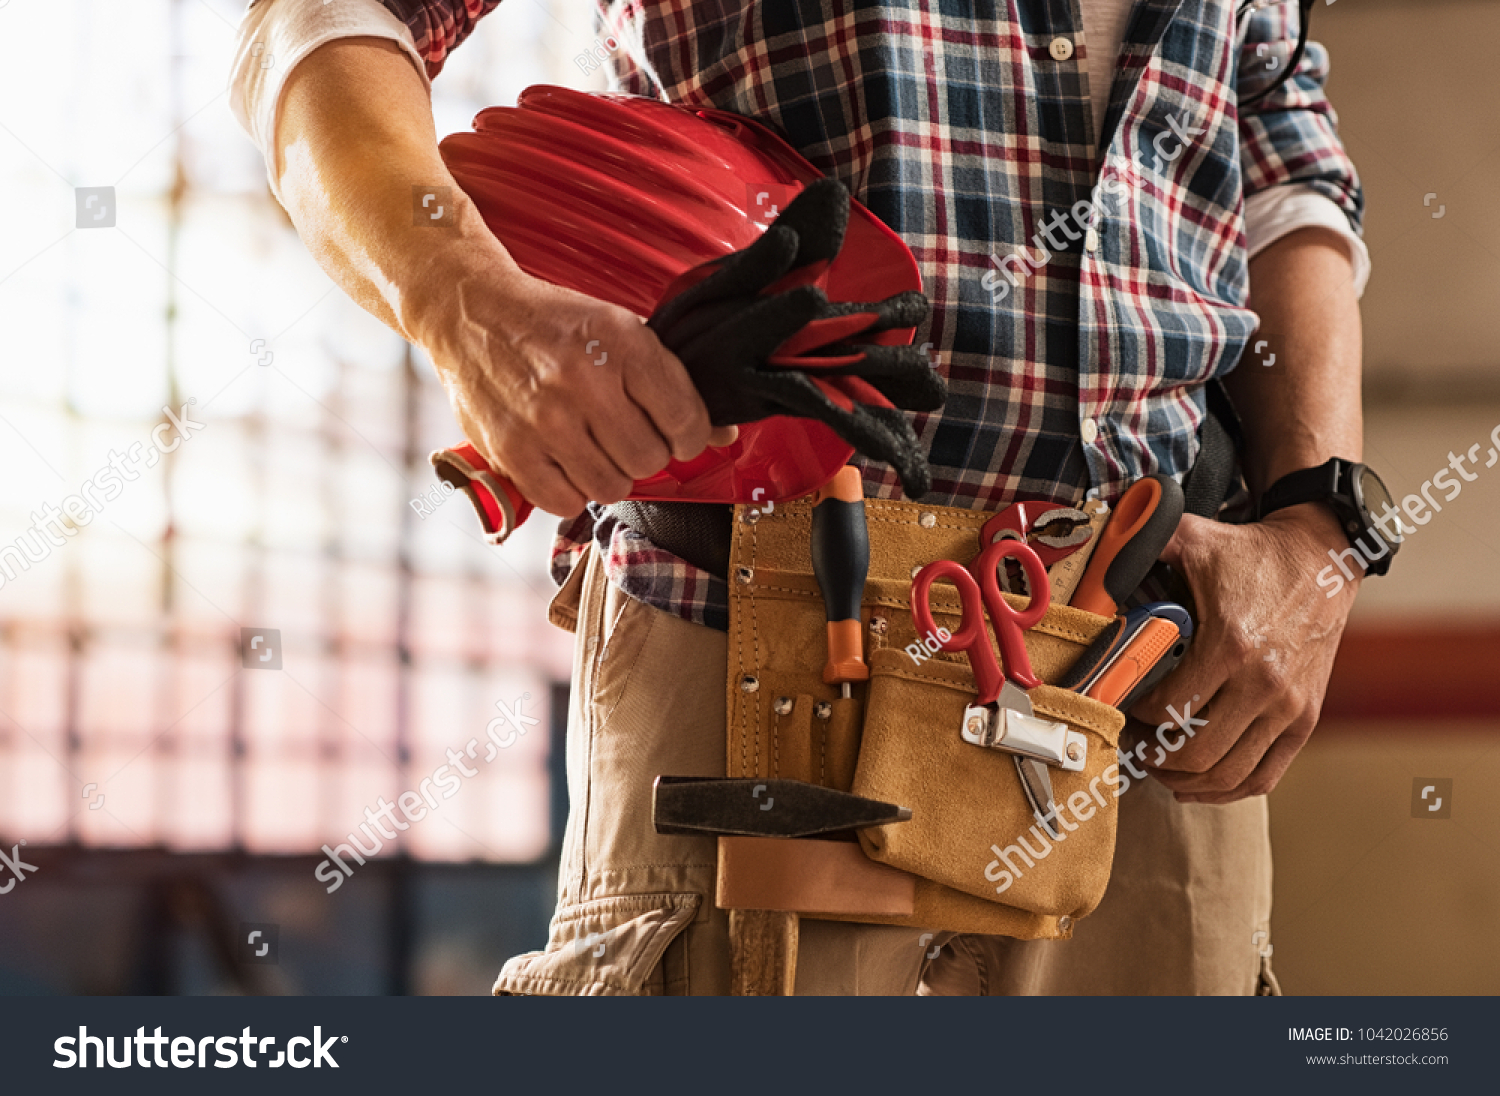 Closeup of bricklayer hands holding hardhat and construction equipment. Detail of mason man hands holding work gloves and wearing tool kit on waist. Handyman with tools belt and artisan equipment. #1042026856